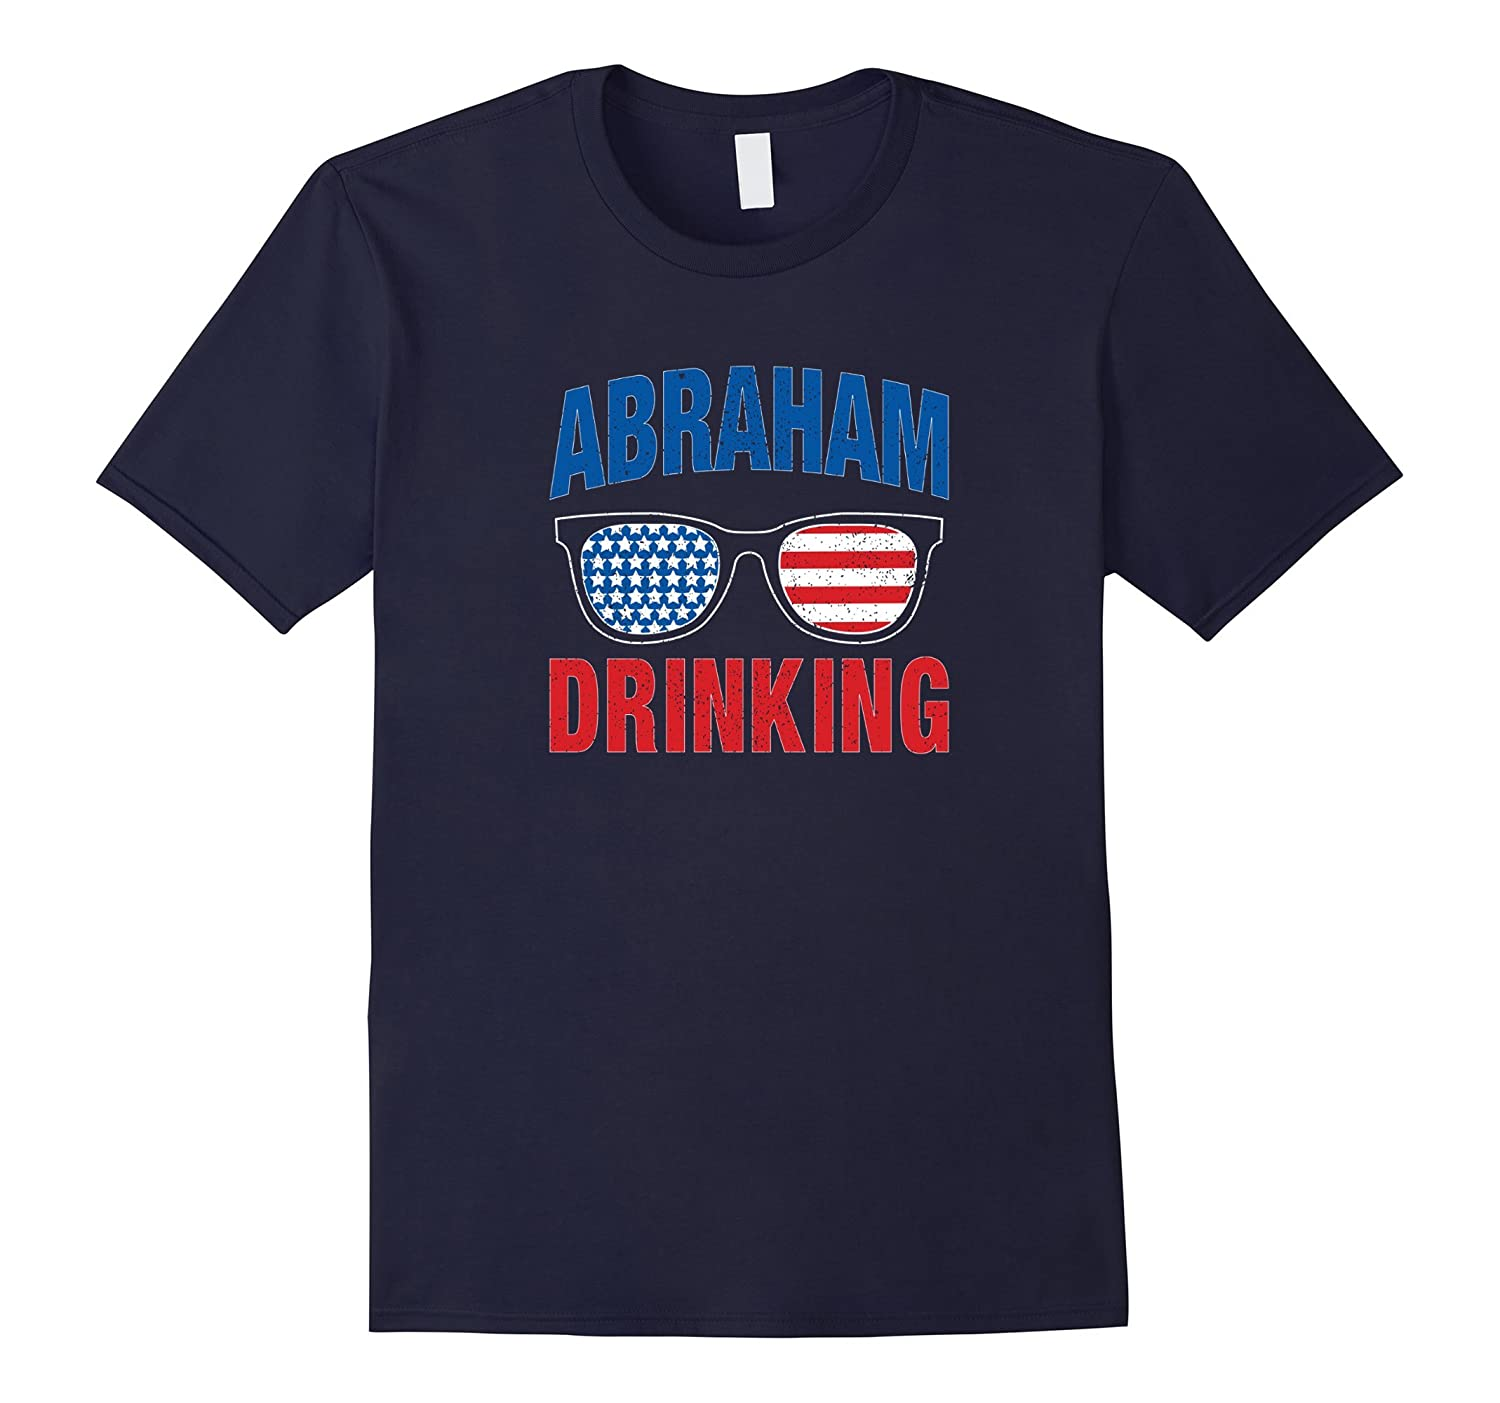 Drinking like Lincoln shirt